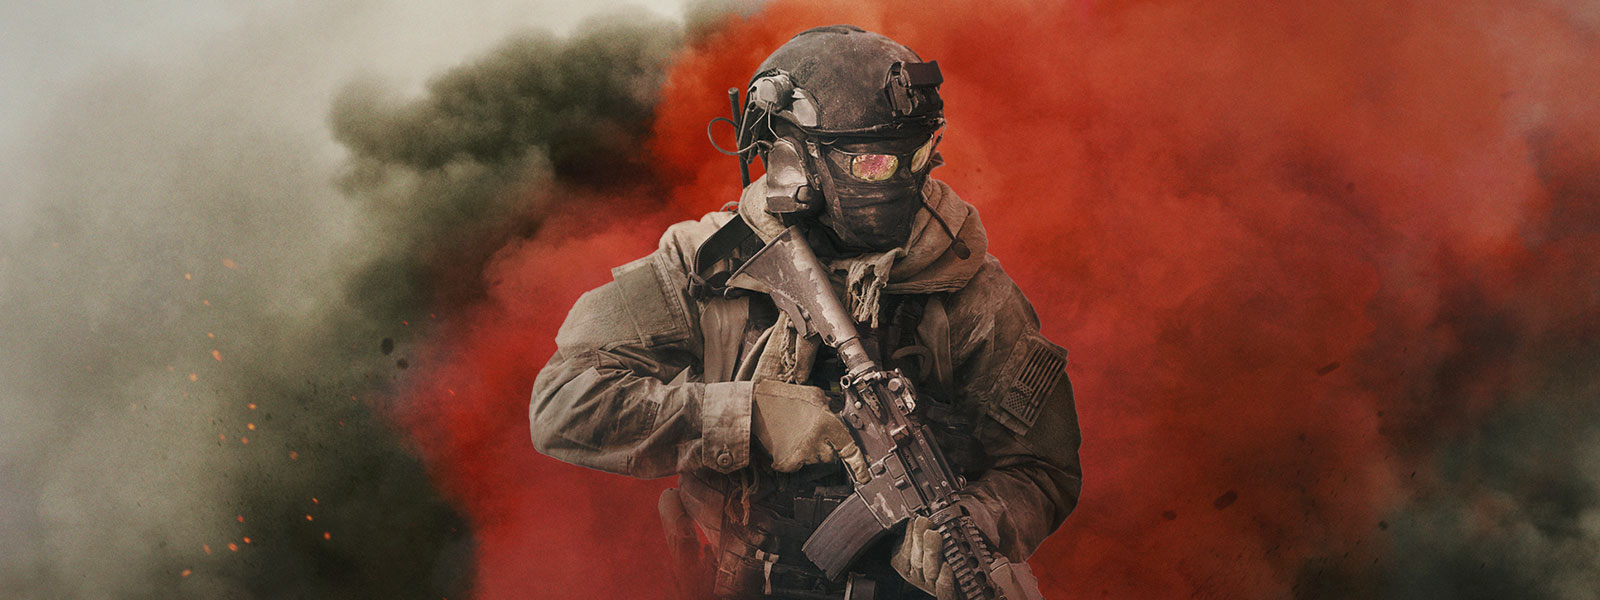 Call of Duty: Modern Warfare character wearing tactical gear and holding a gun in front of white, grey and red smoke